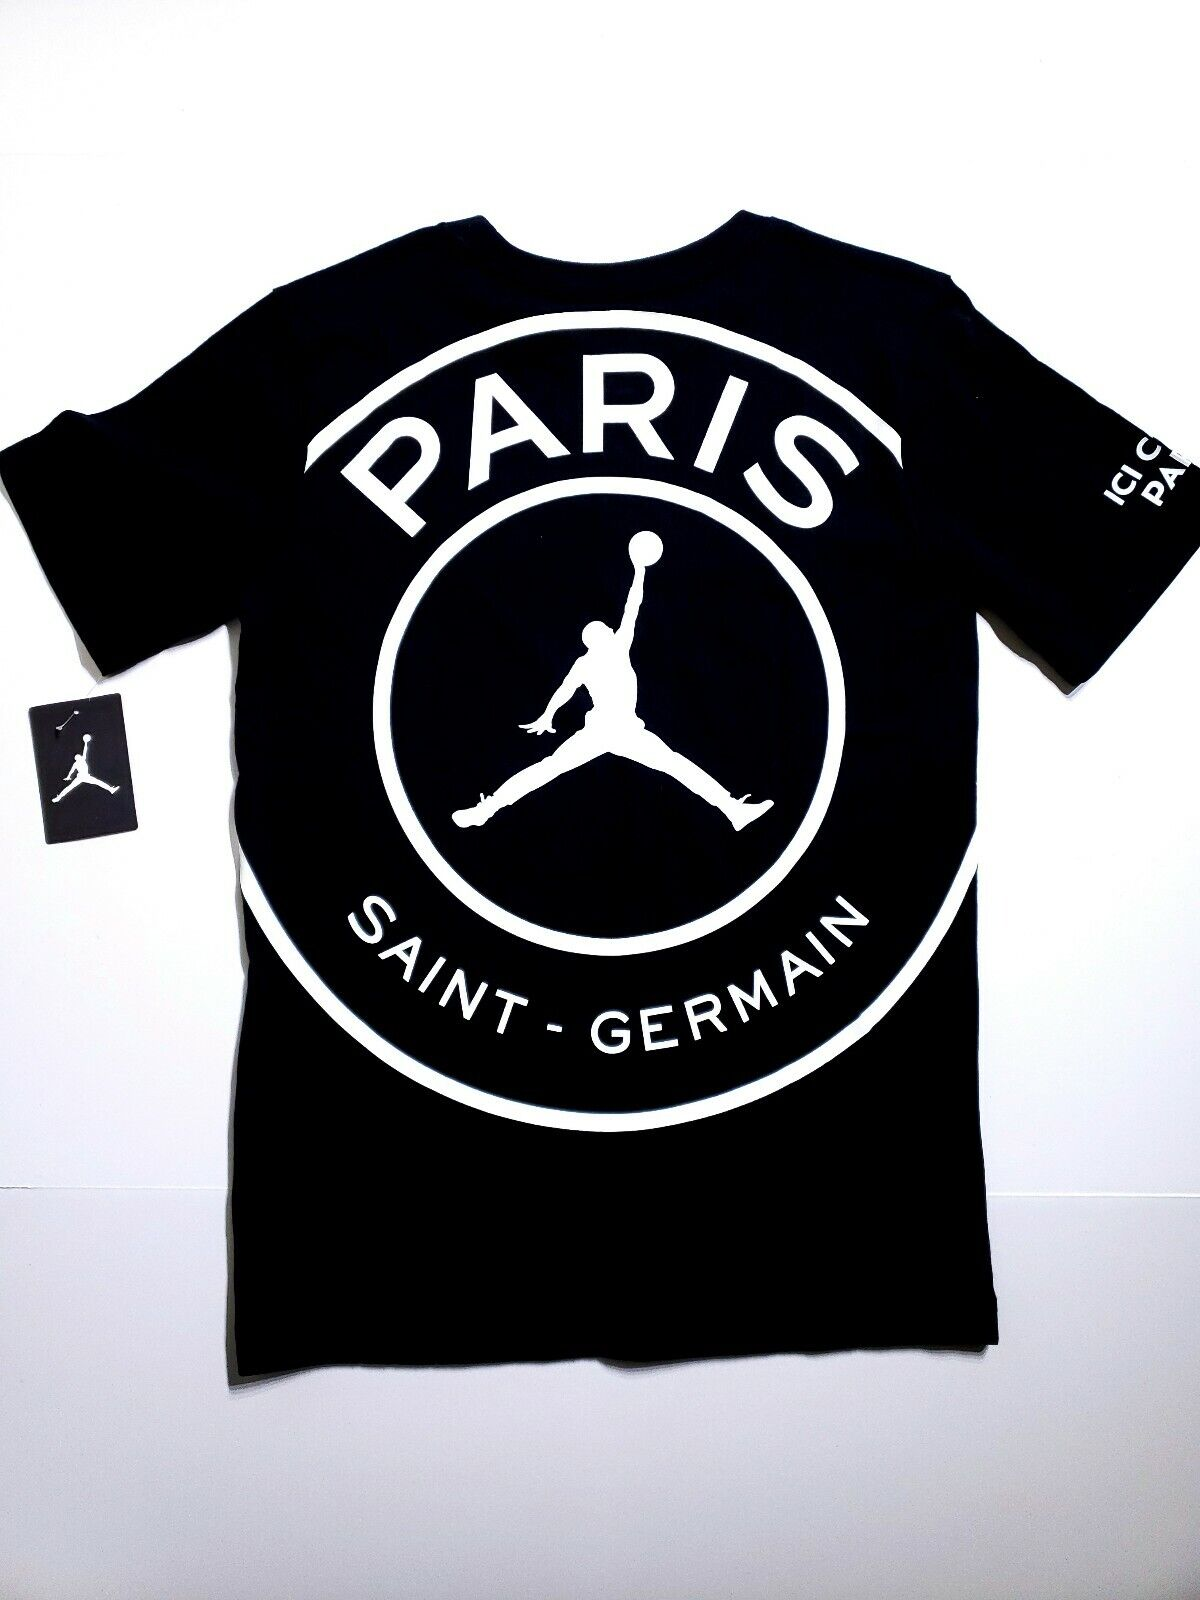 e3540f37d10 Nike Jordan X PSG Paris Saint Germain Black Cotton Big Logo T-shirt Youth  Large